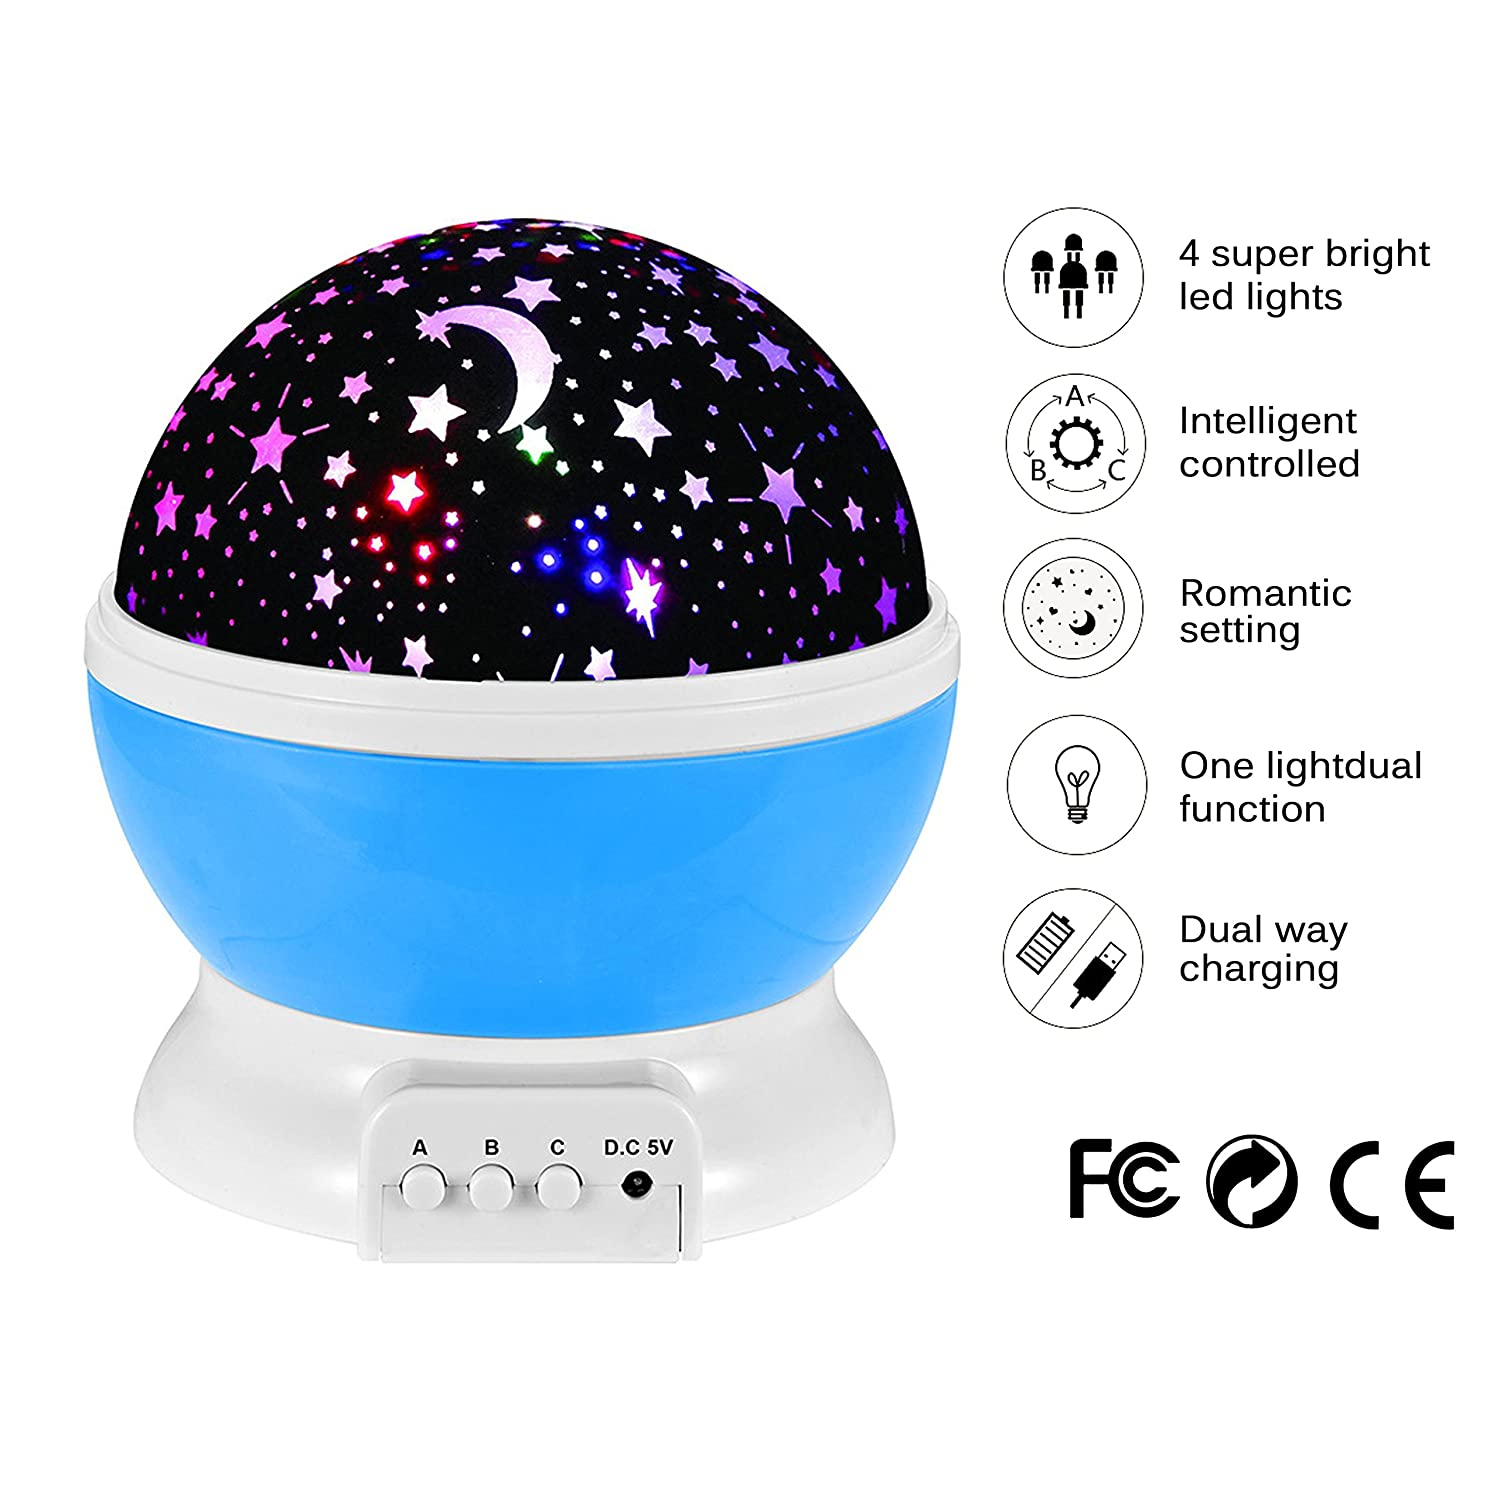 Night Lighting Lamp Projector by ZoroPlan ( 4 LED Beads, 3 Model Light, 3.3FT USB Cord ) Romantic Rotating Cosmos Star Sky Moon Projector for Children Kids Bedroom (Blue)